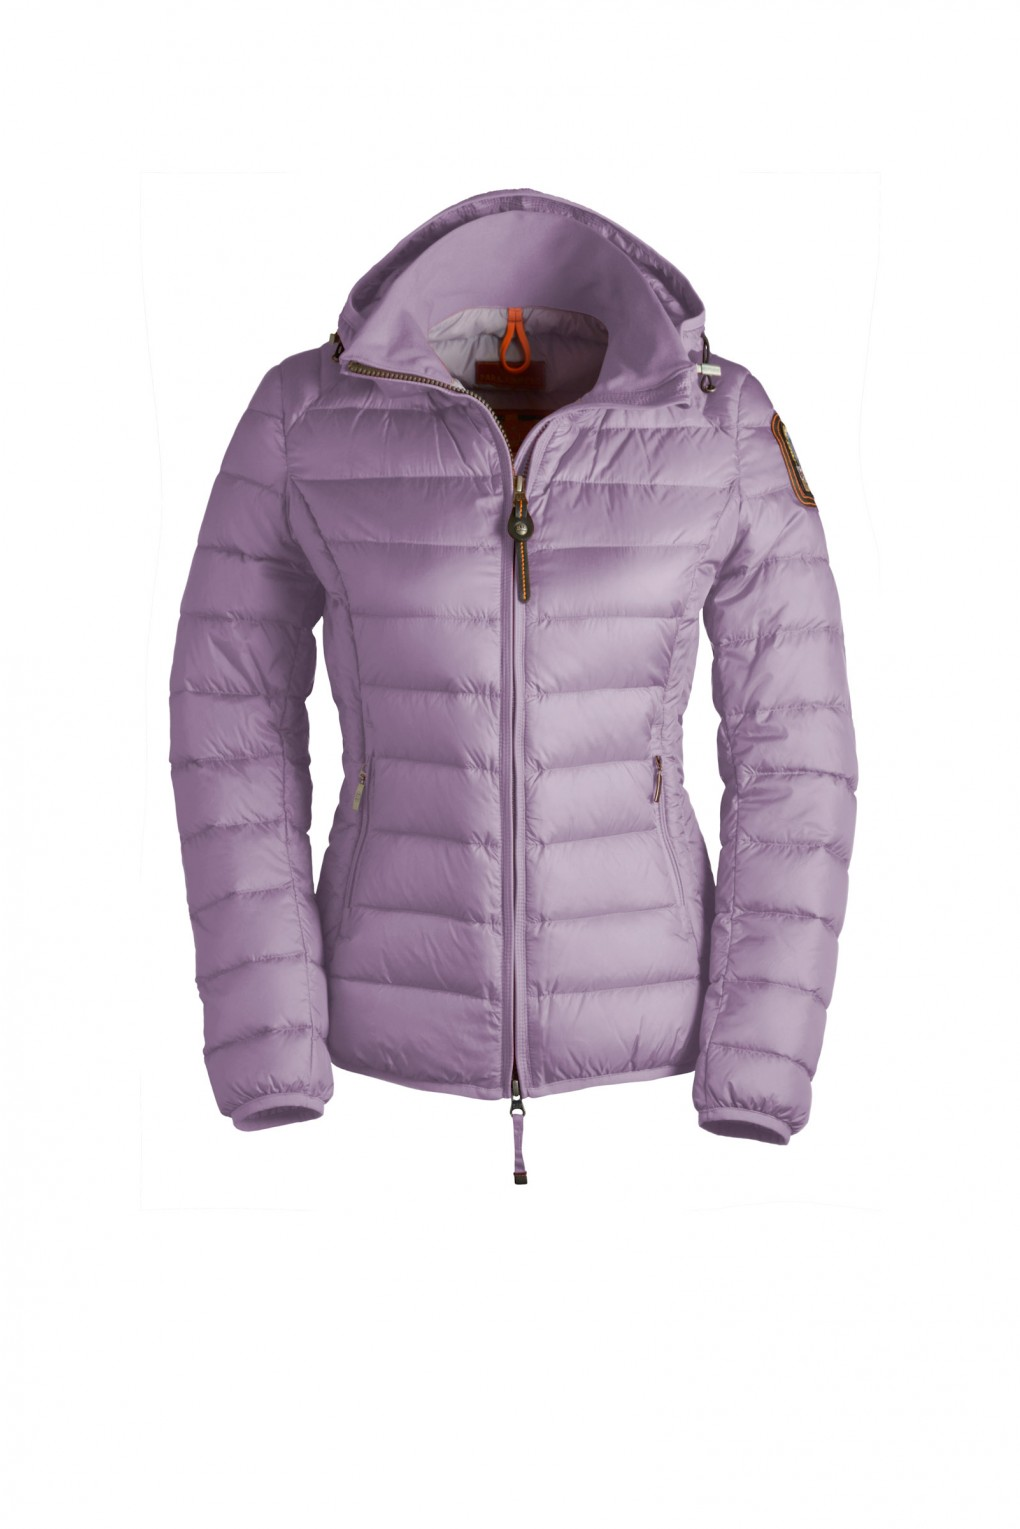 parajumpers JULIET6 woman outerwear Mauve